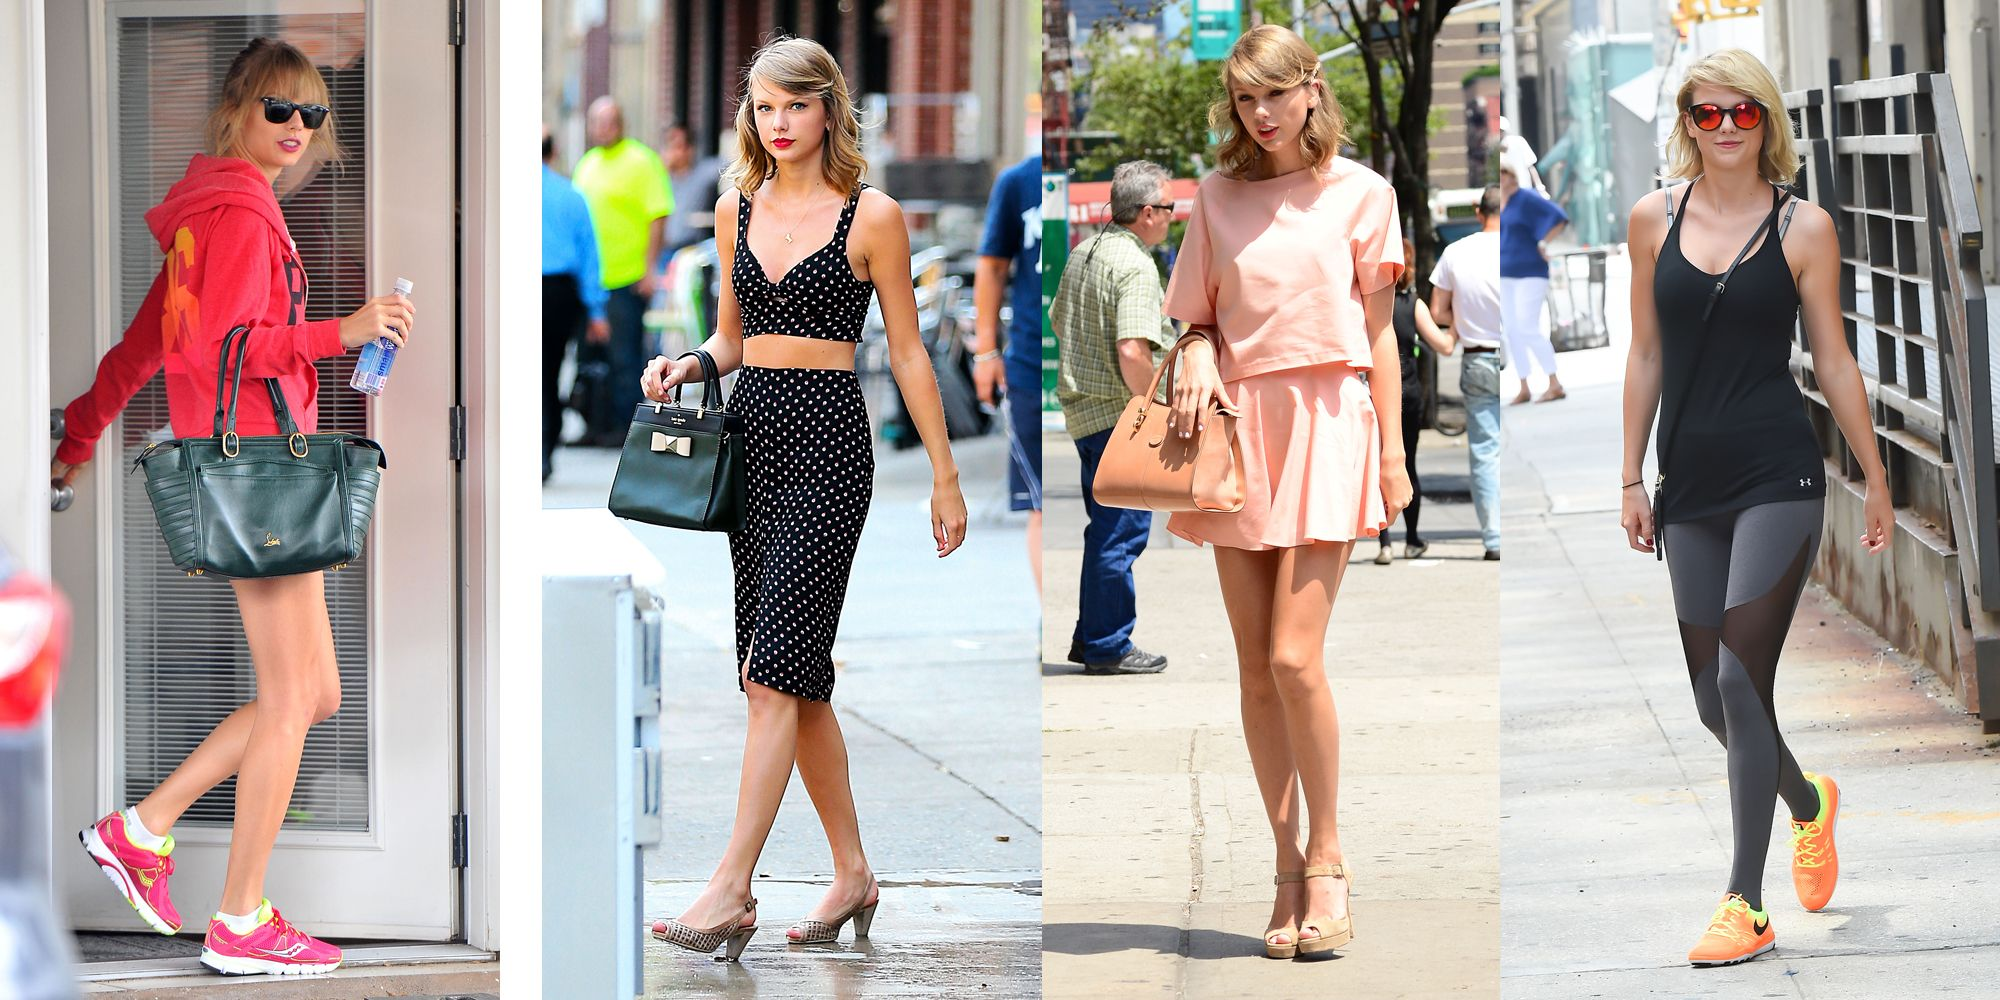 Tom Tailor Winter Love A Fashion Friend Taylor Swift S Gym Fashion Evolution Taylor Swift S Workout